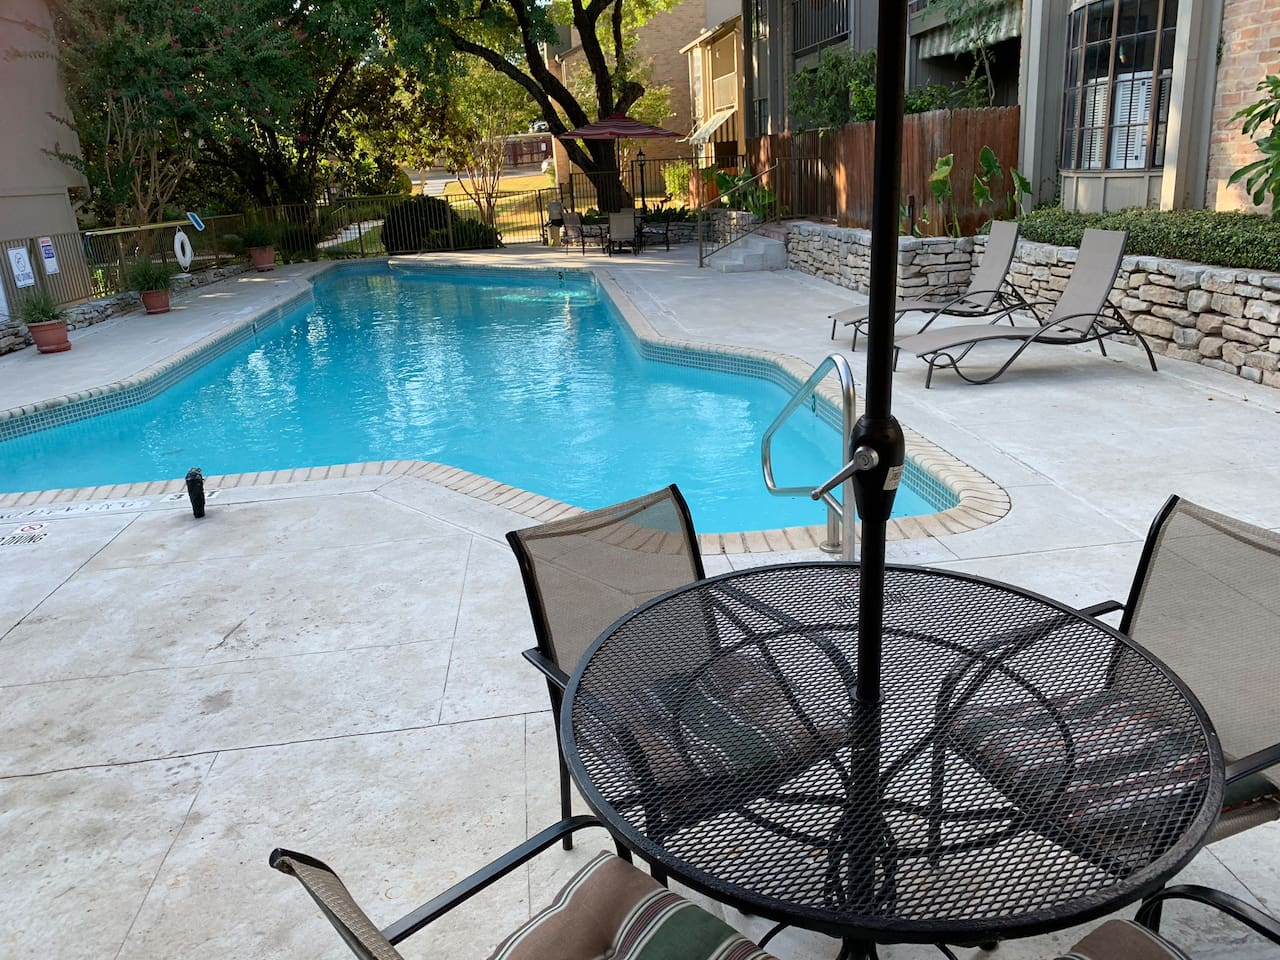 Sit poolside and read a book or catch some sun !